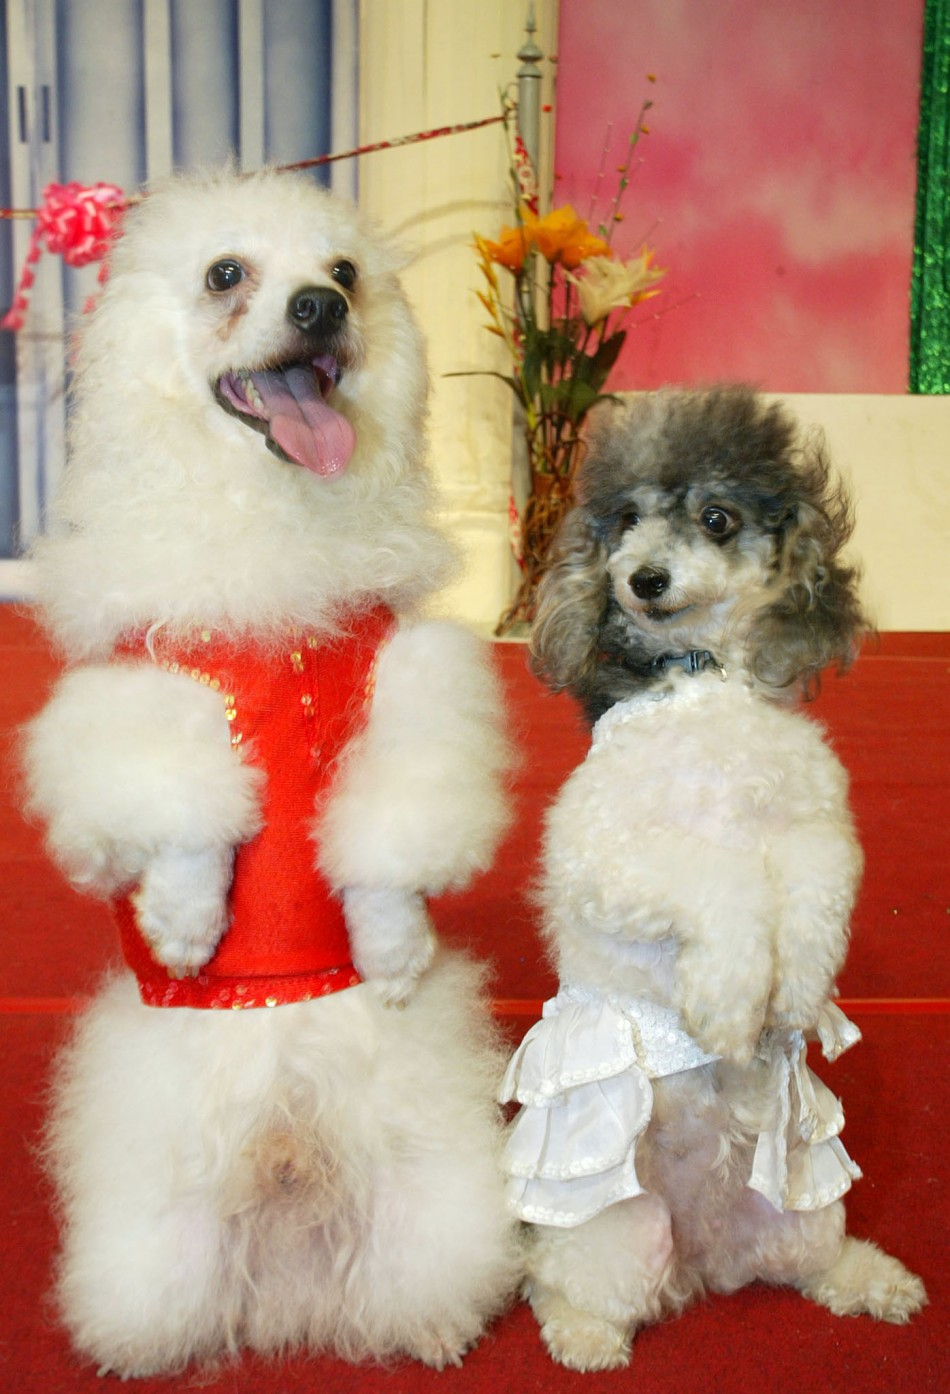 ferrets on steroids look like poodles